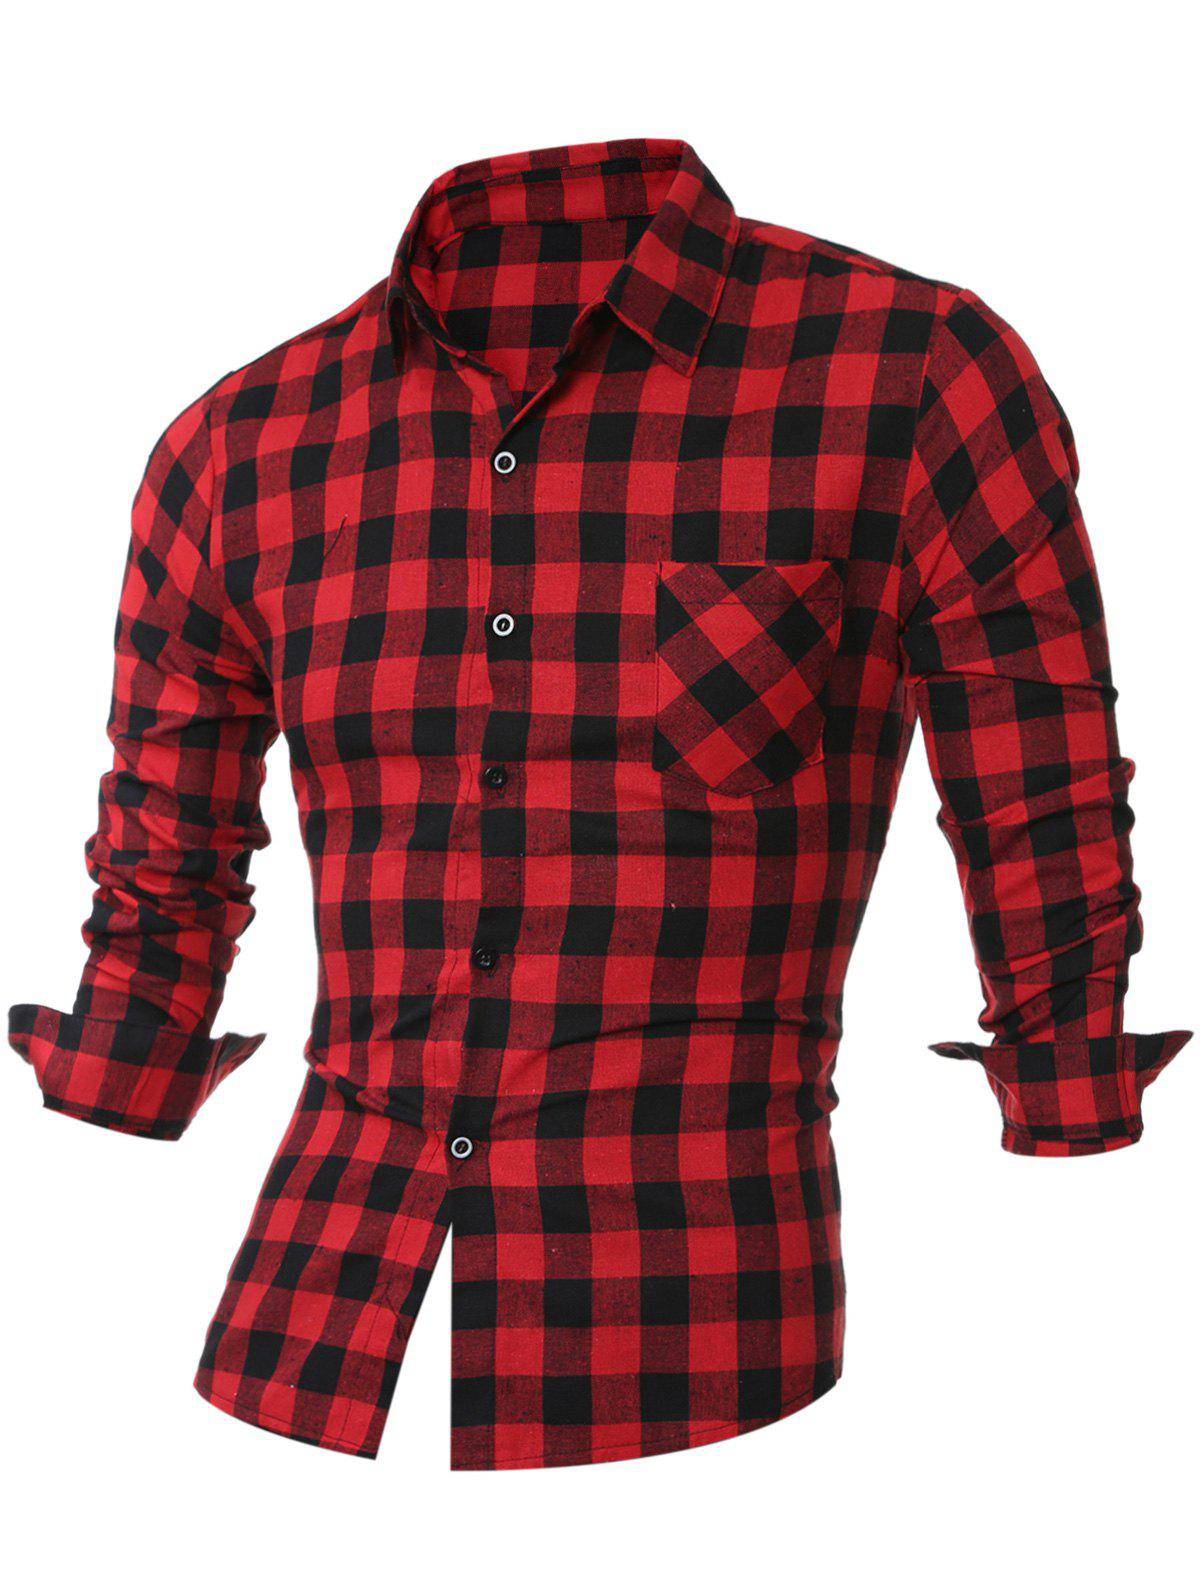 Breast Pocket Long Sleeve Button Up Plaid Shirt portable infrared breast diagnosis